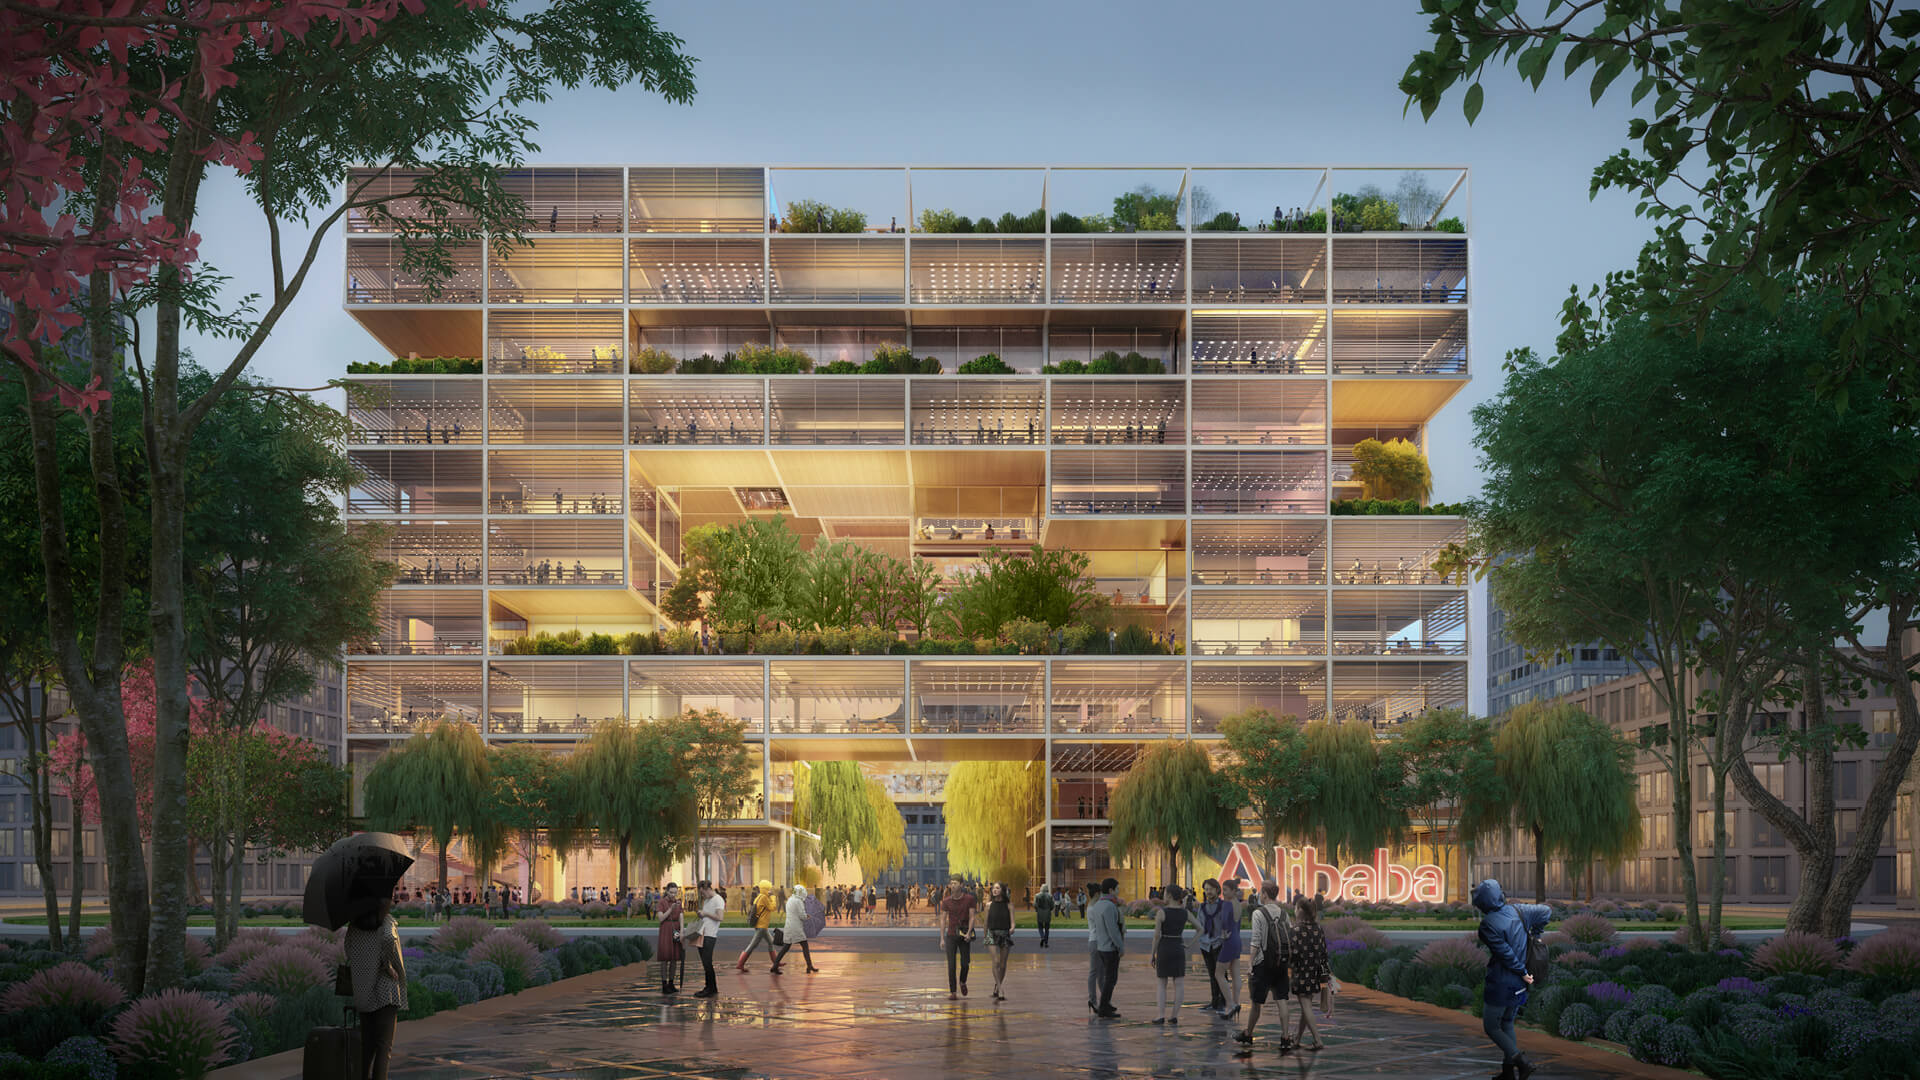 The new offices for Alibaba to be built by Foster + Partners in Shanghai, China | Alibaba Headquarters | Foster and Partners | STIRworld